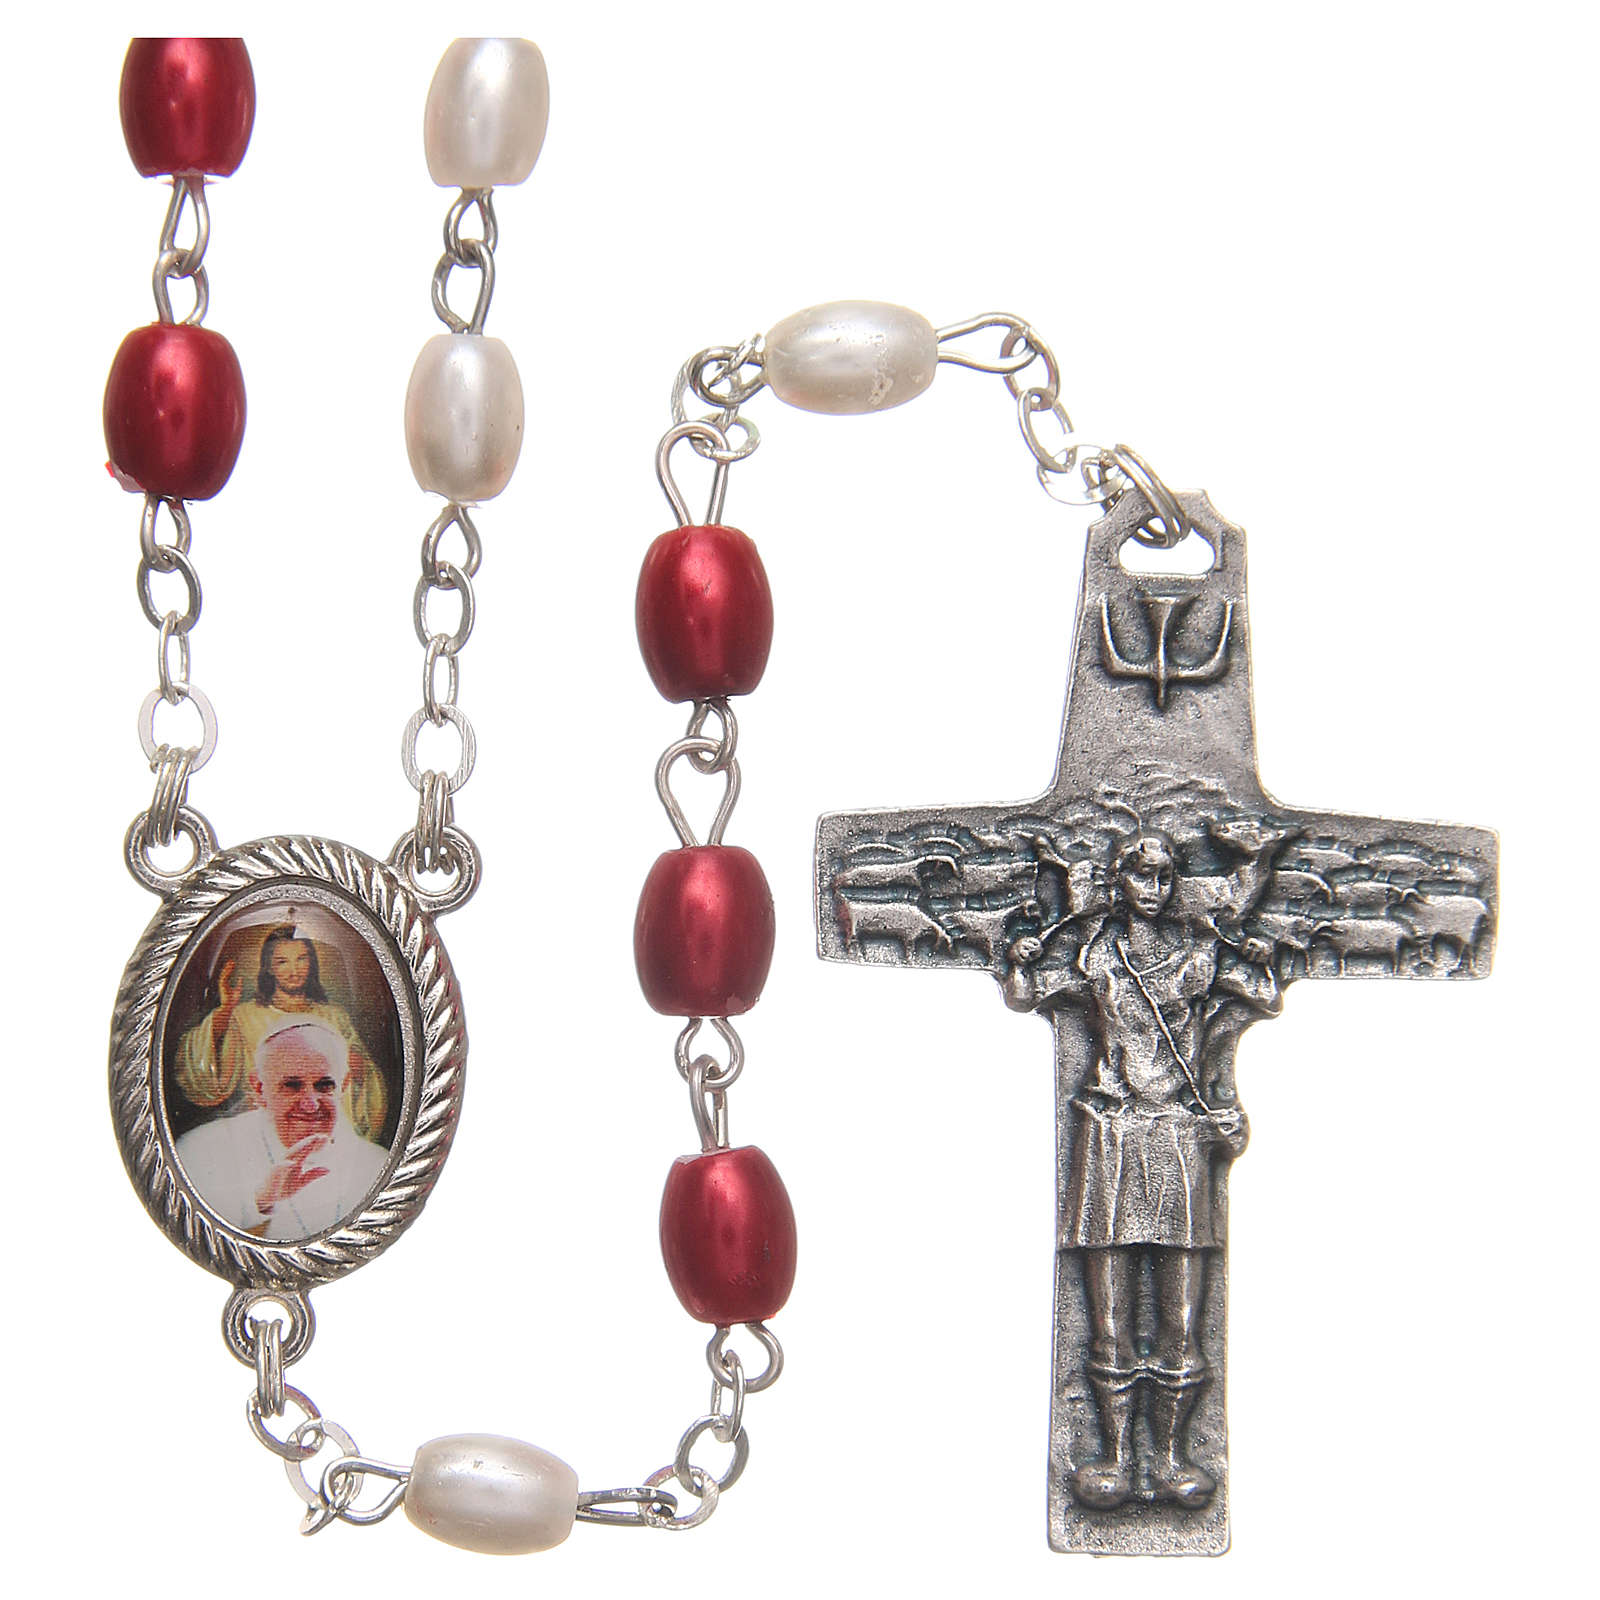 Pope Francis rosary beads in PVC 8mm 4